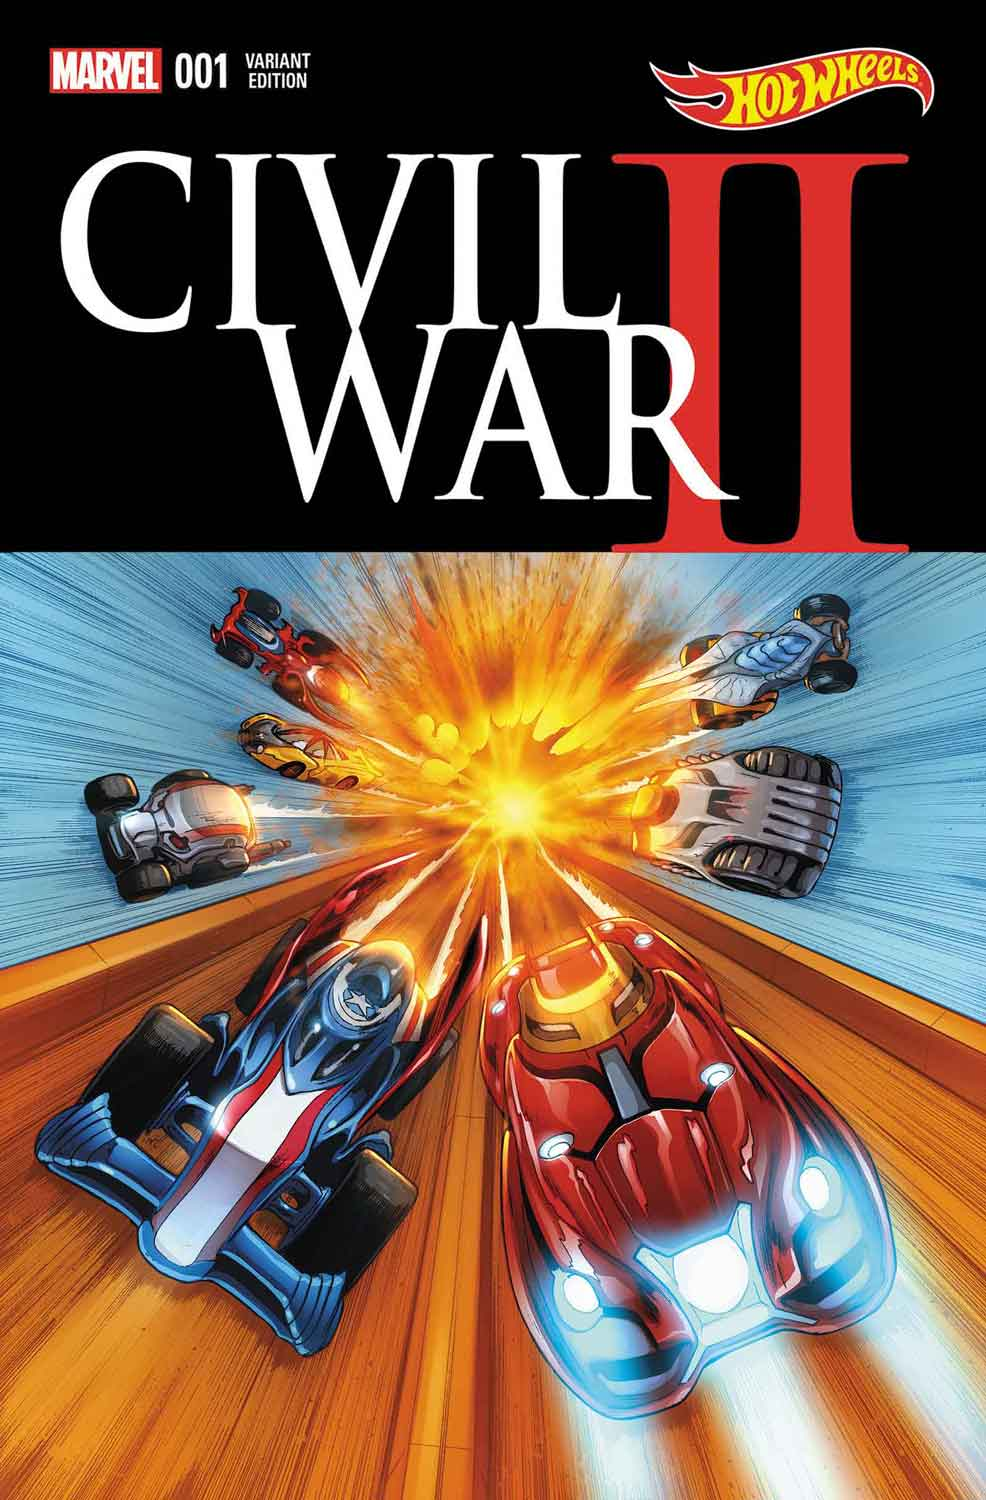 CIVIL WAR II #1 Hot Wheels variant cover